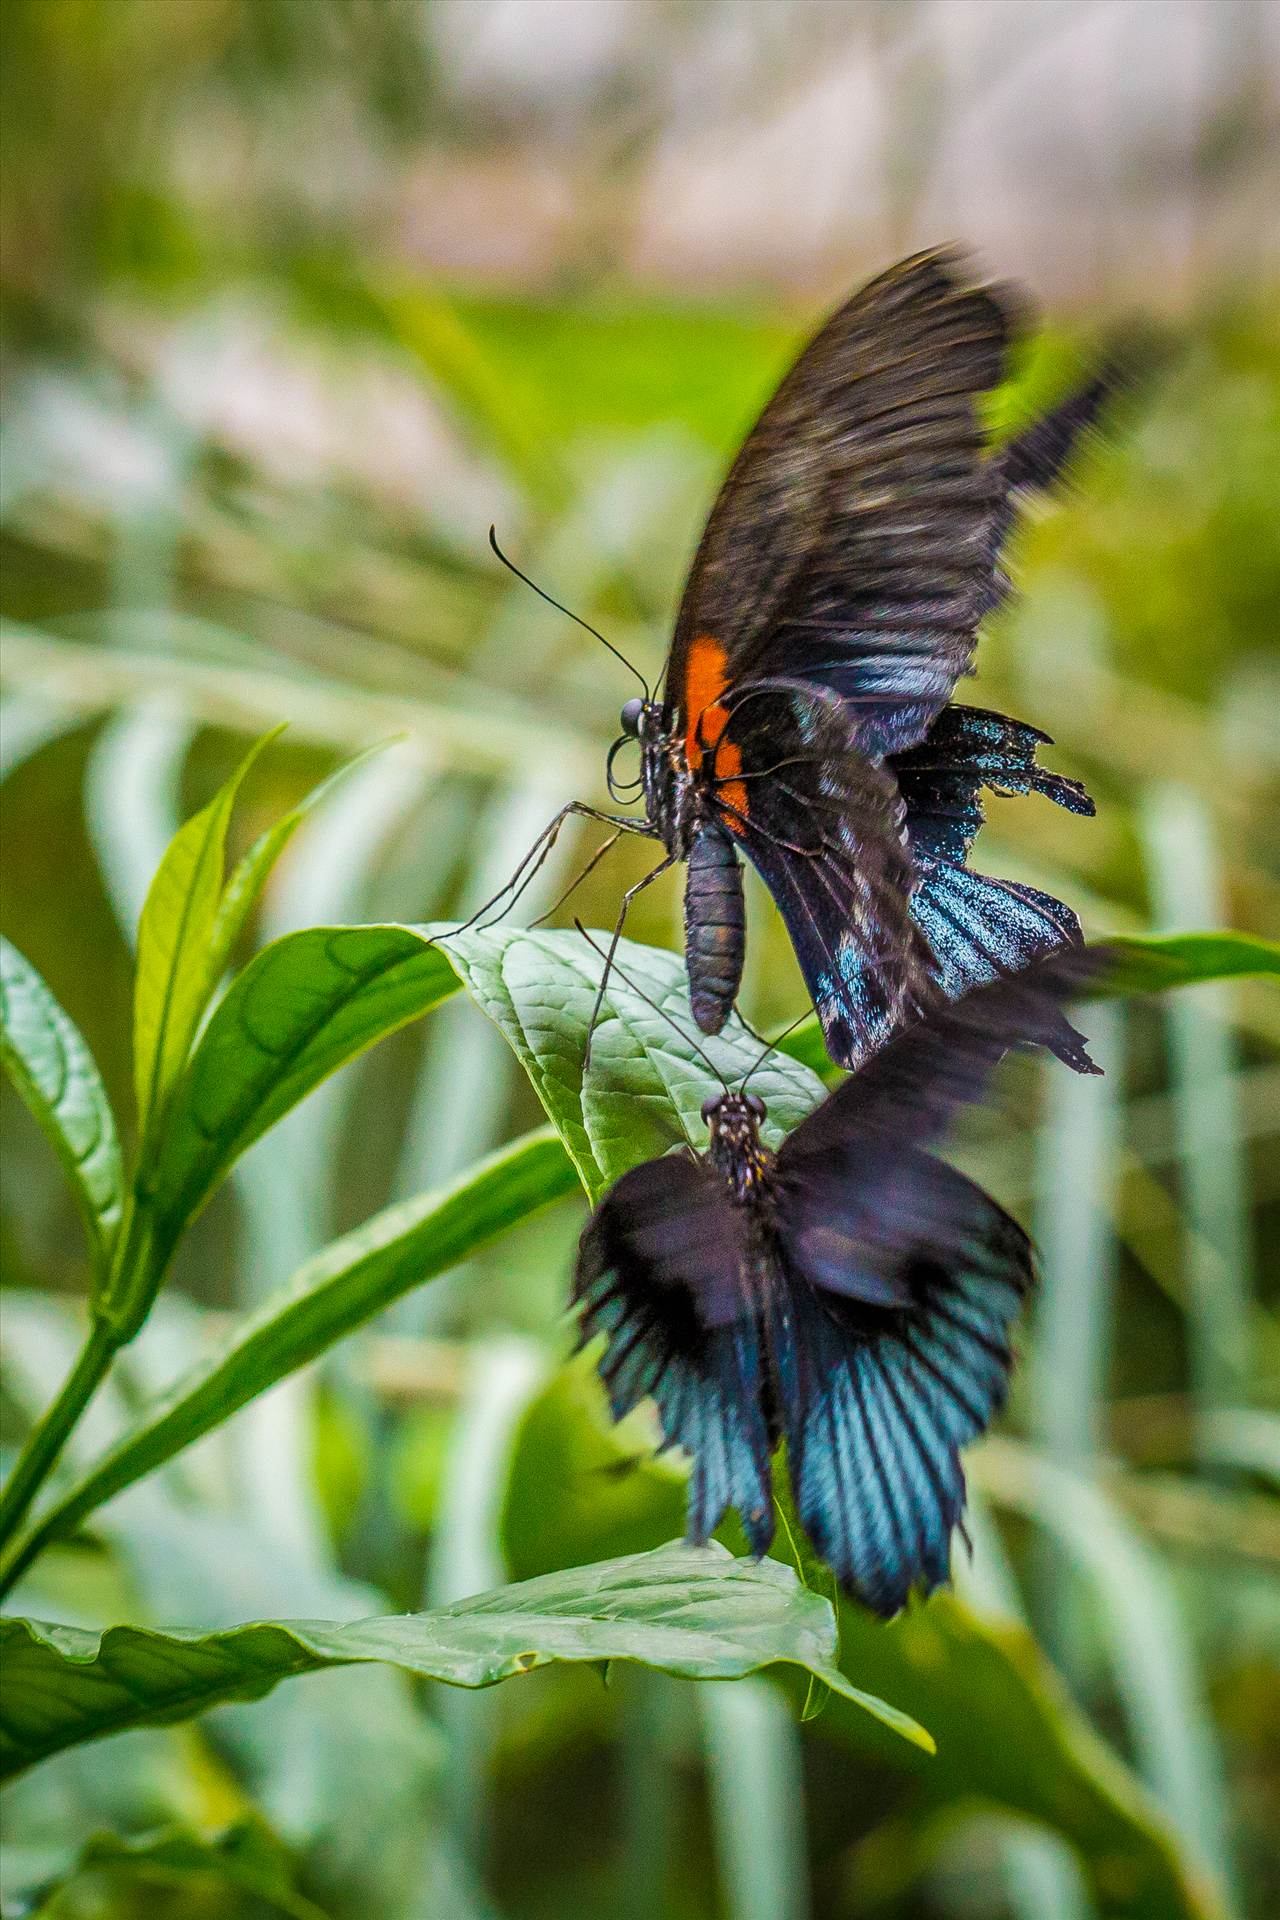 Attack! - It may not be a fight per se, but it appears that two butterflies are having it out in this action shot. by D Scott Smith